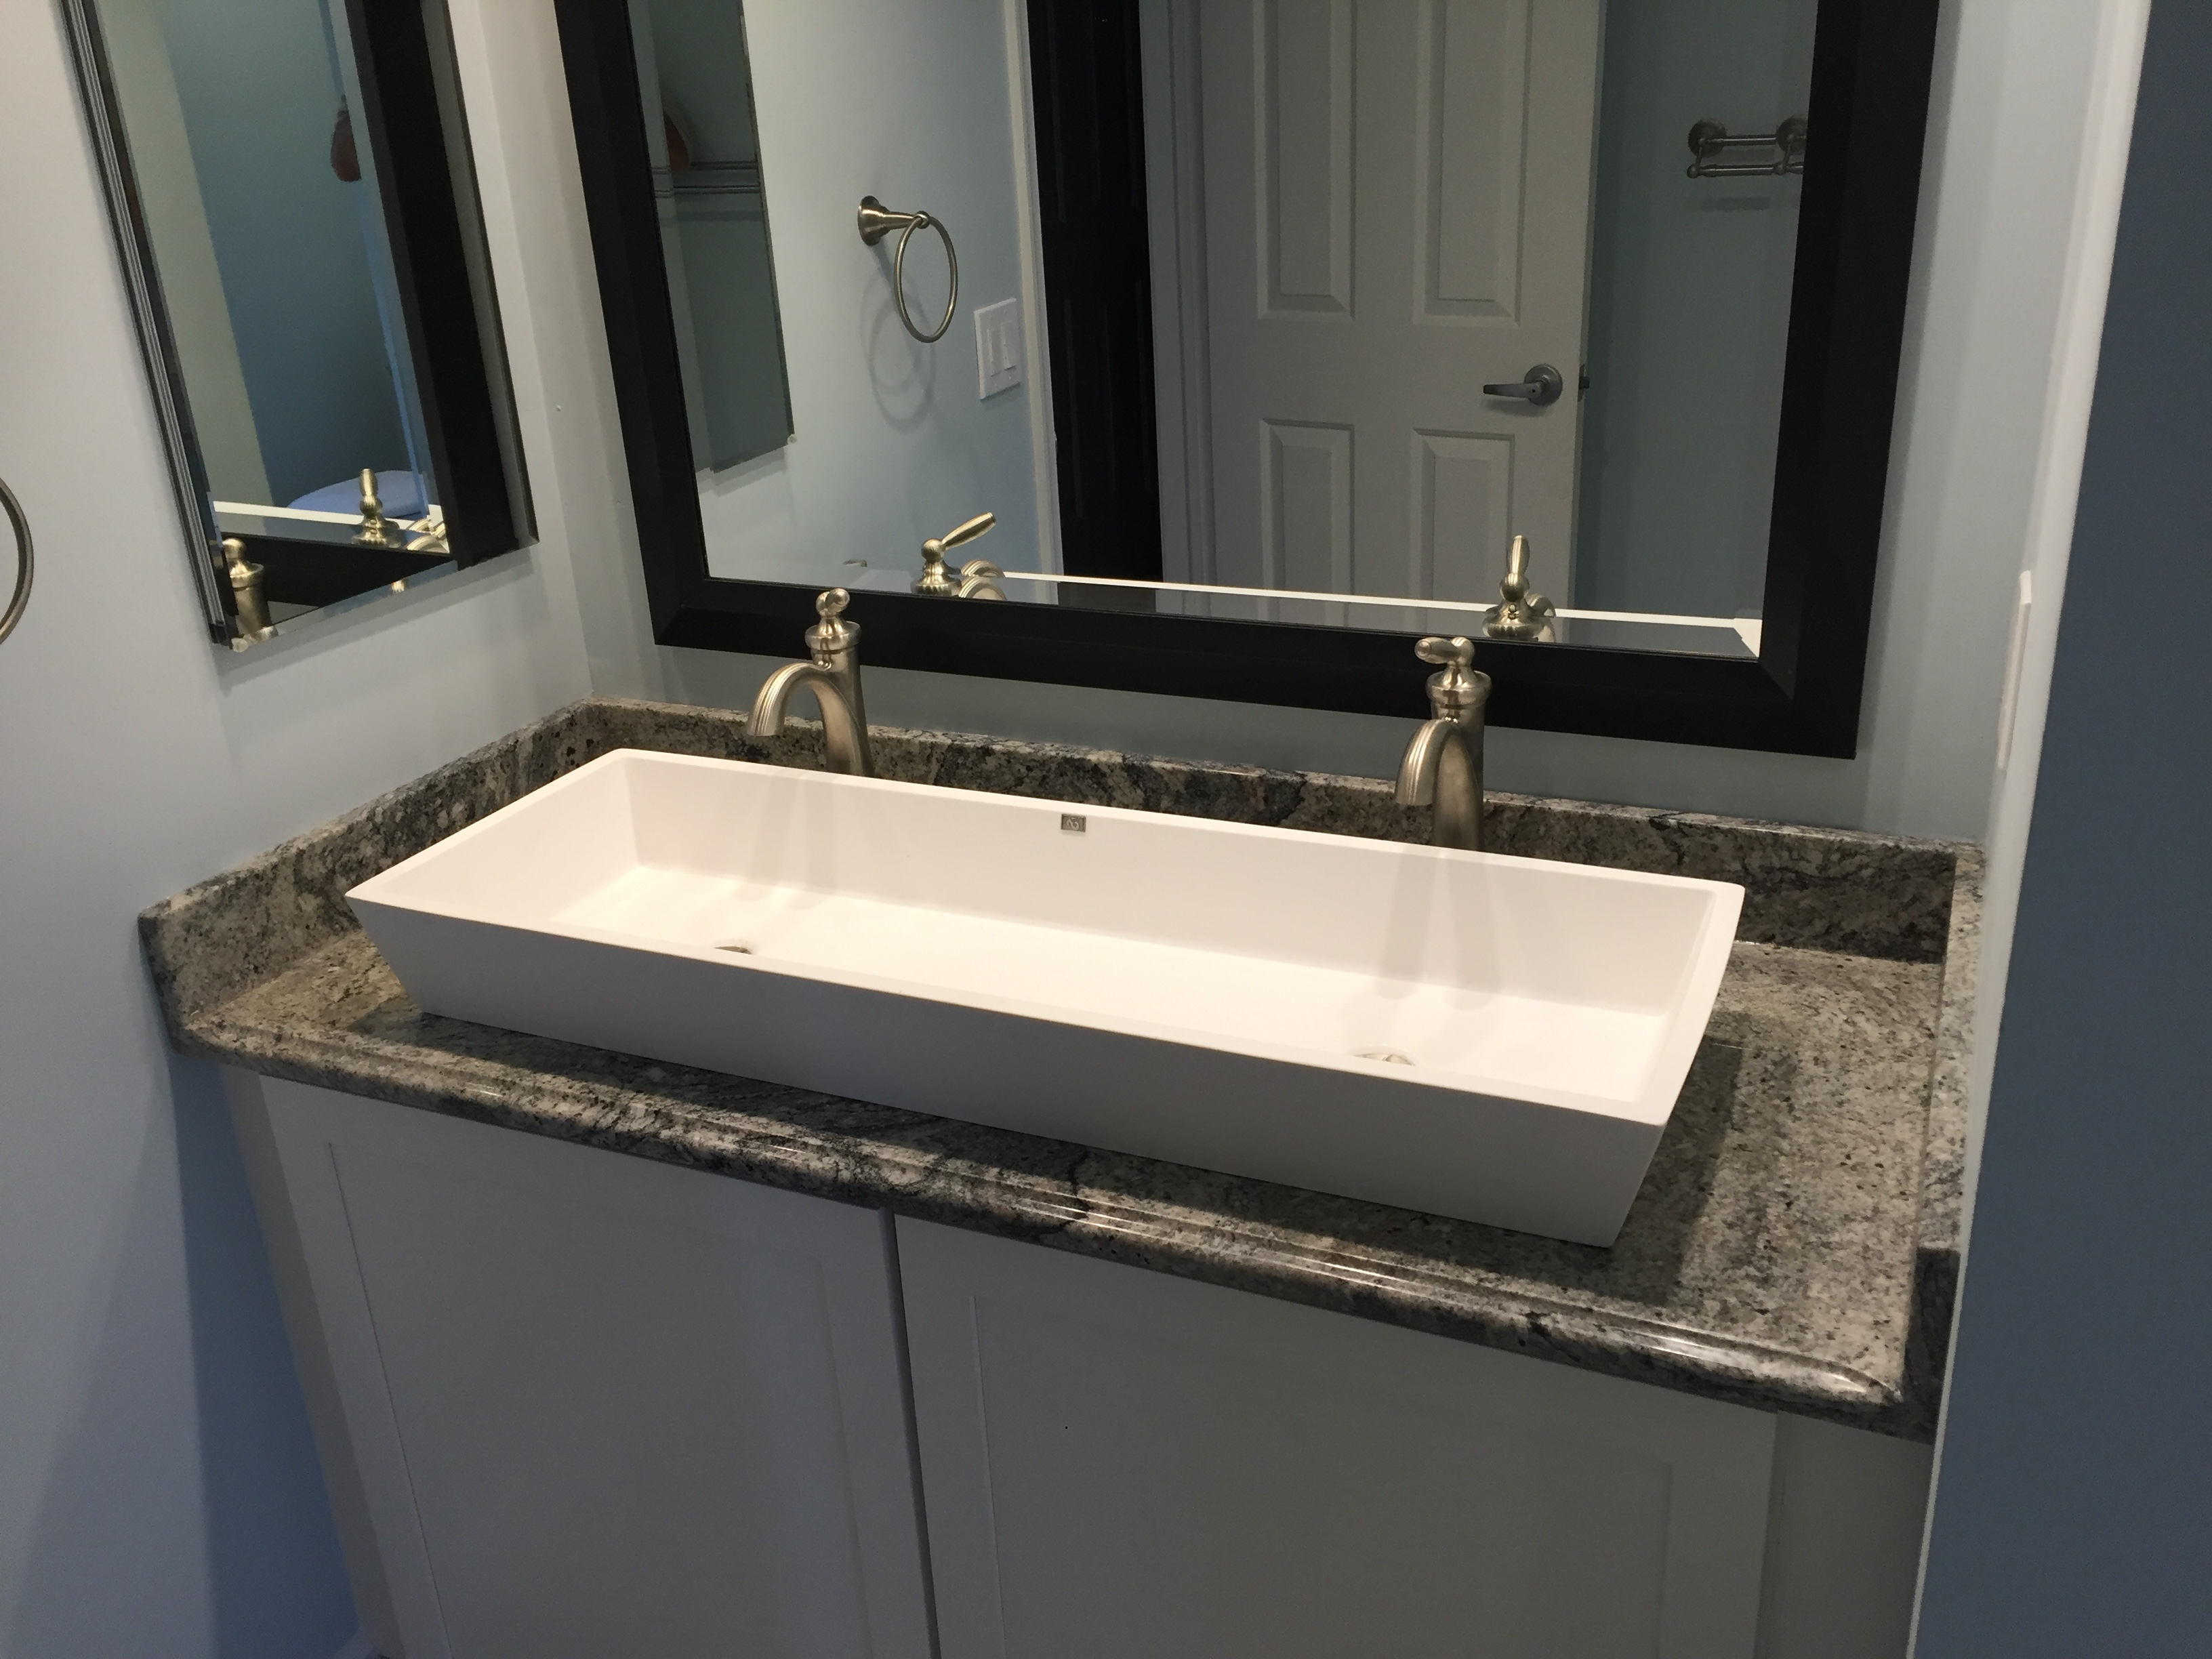 Bathrooms Remodeling L Bathroom Renovation L Farmingdale NJ - Where to start bathroom renovation